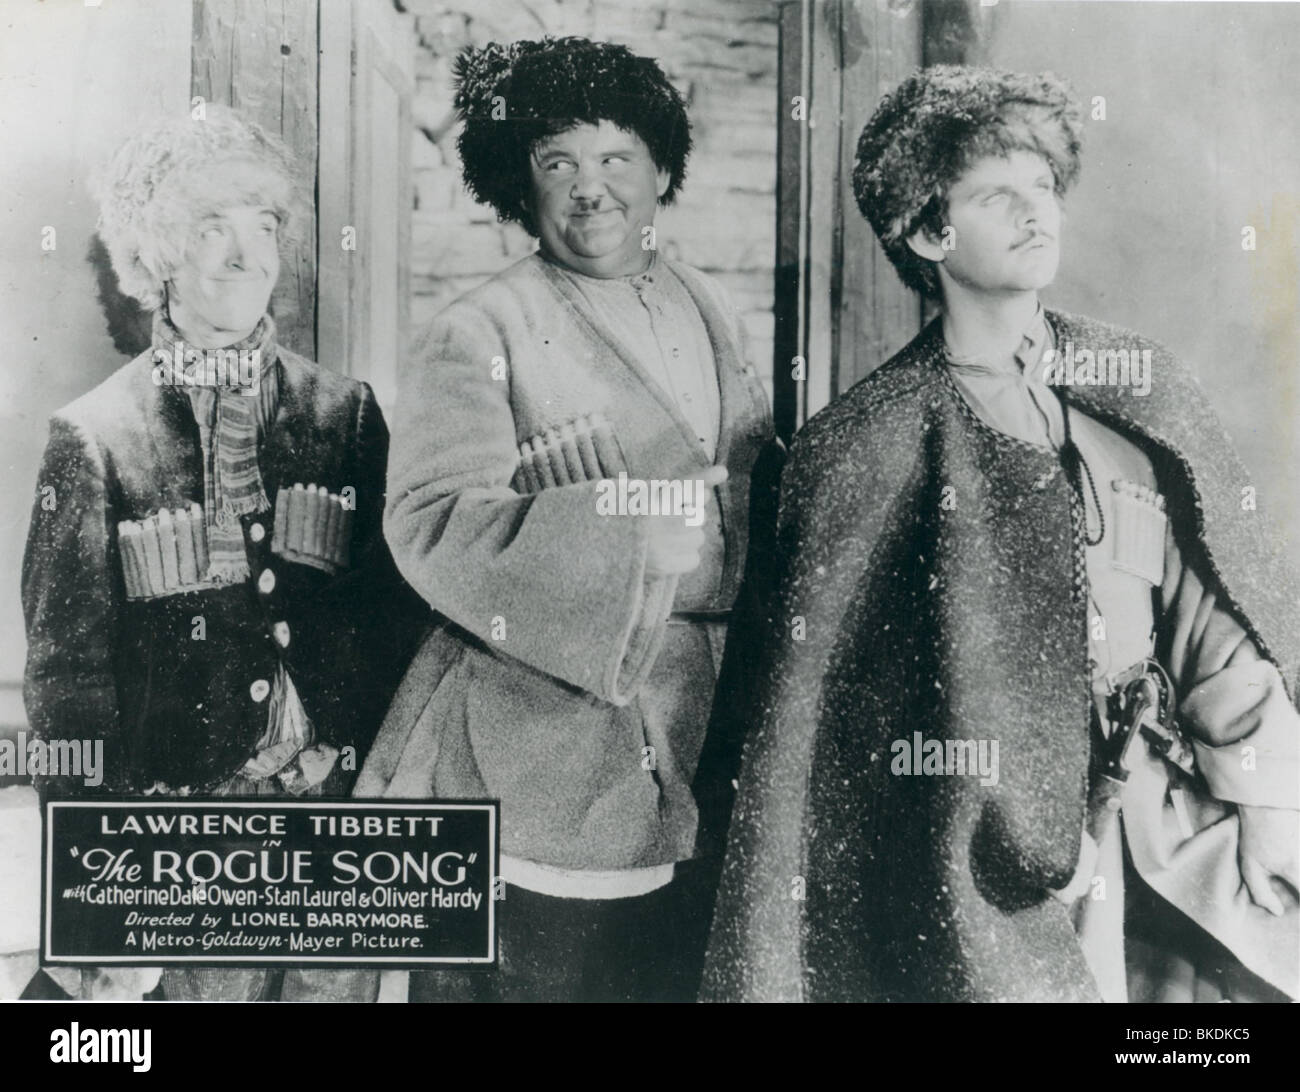 THE ROGUE SONG (1930) STAN LAUREL, OLIVER HARDY, LAUREL AND HARDY ROGS 002P Stock Photo